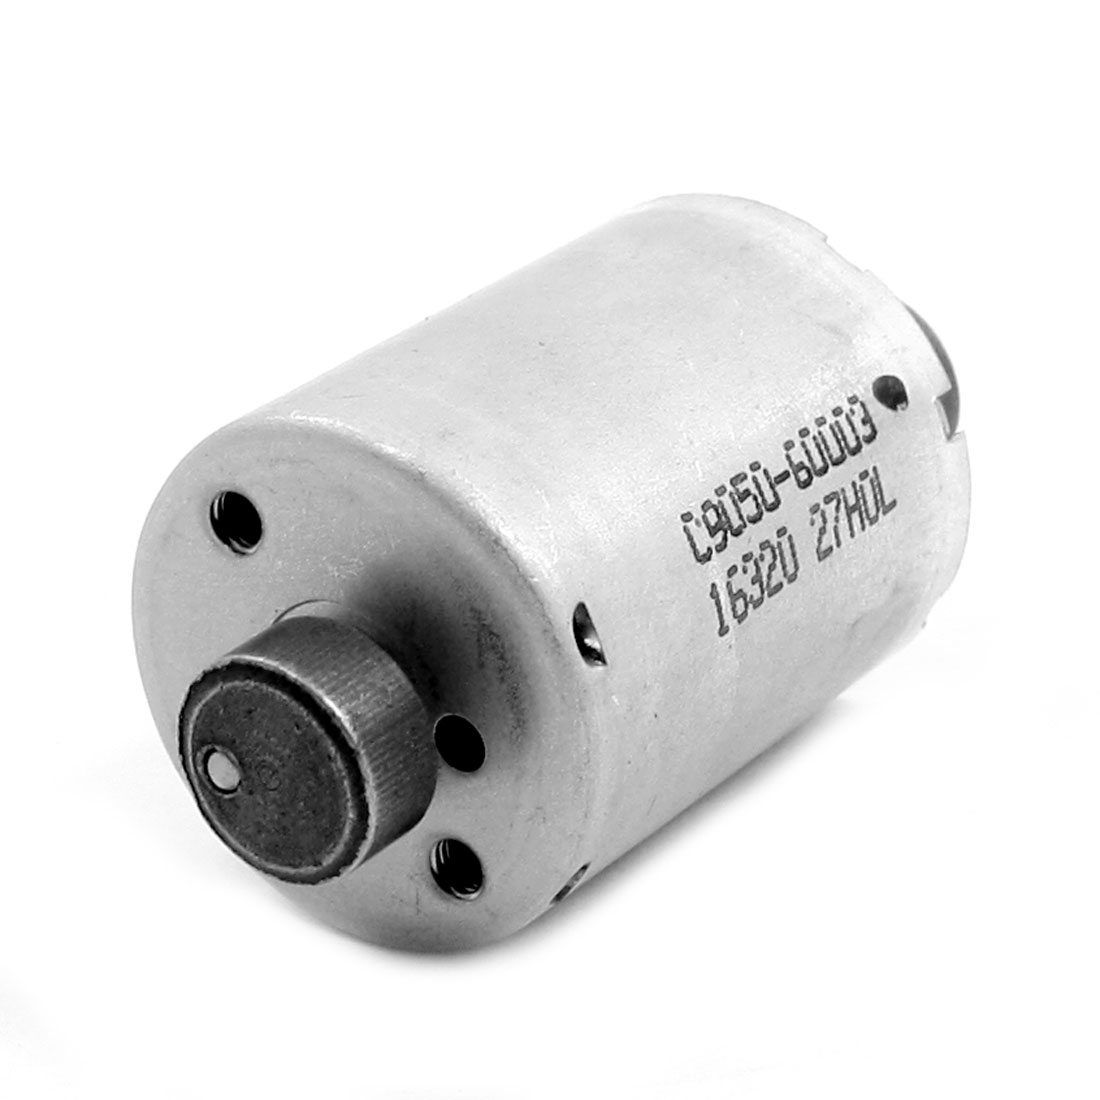 Round-Shaft-3000R-min-Speed-Micro-Vibrating-Vibration-Motor-DC-6-12V